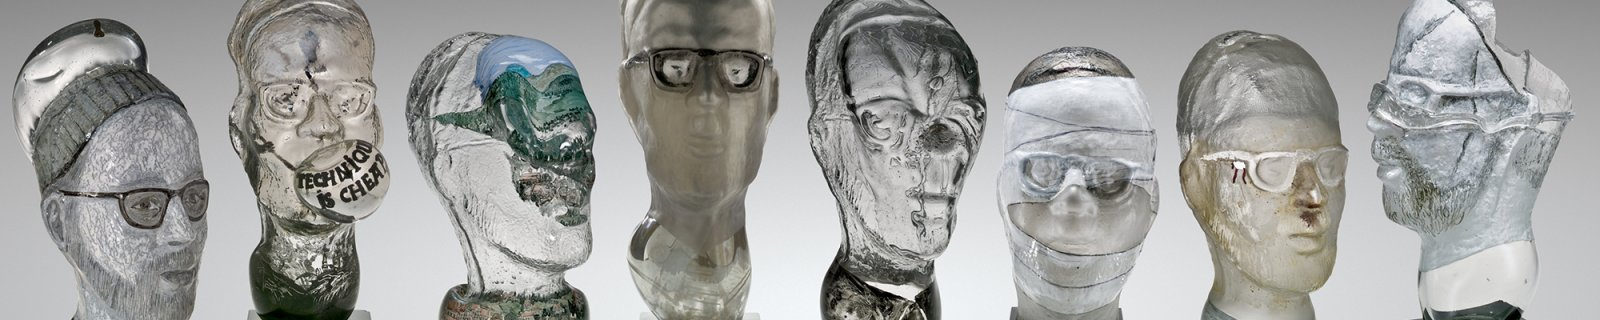 Masters of Studio Glass: Erwin Eisch